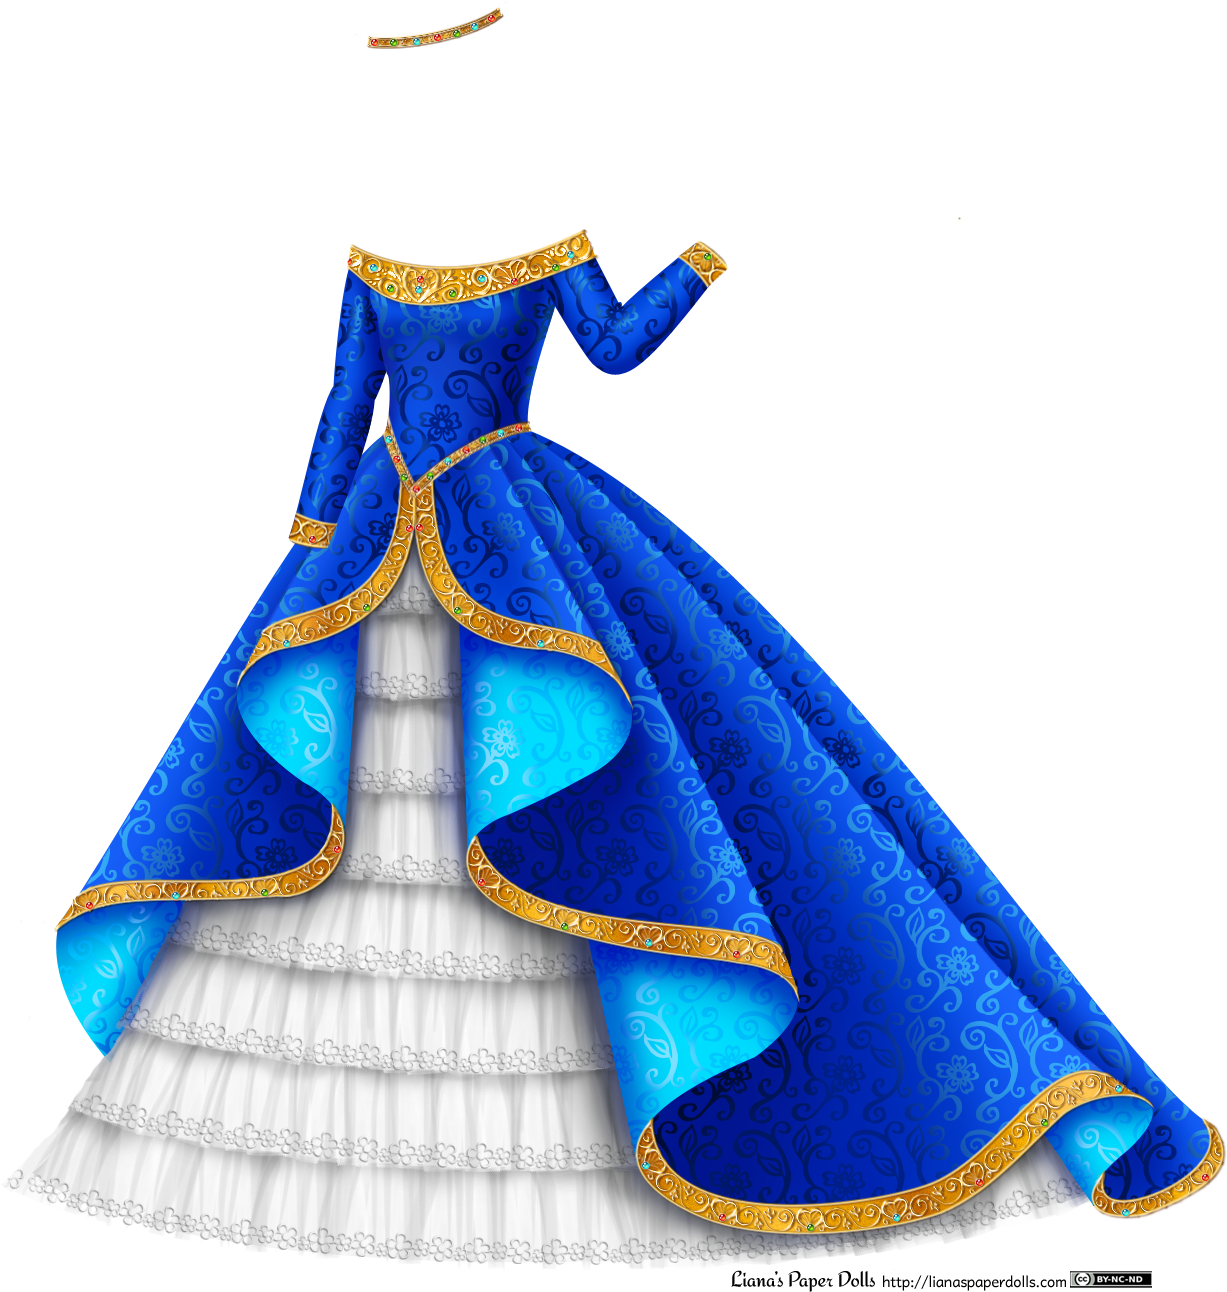 Drawn scroll Blue DOLLS Gown Gown Princess